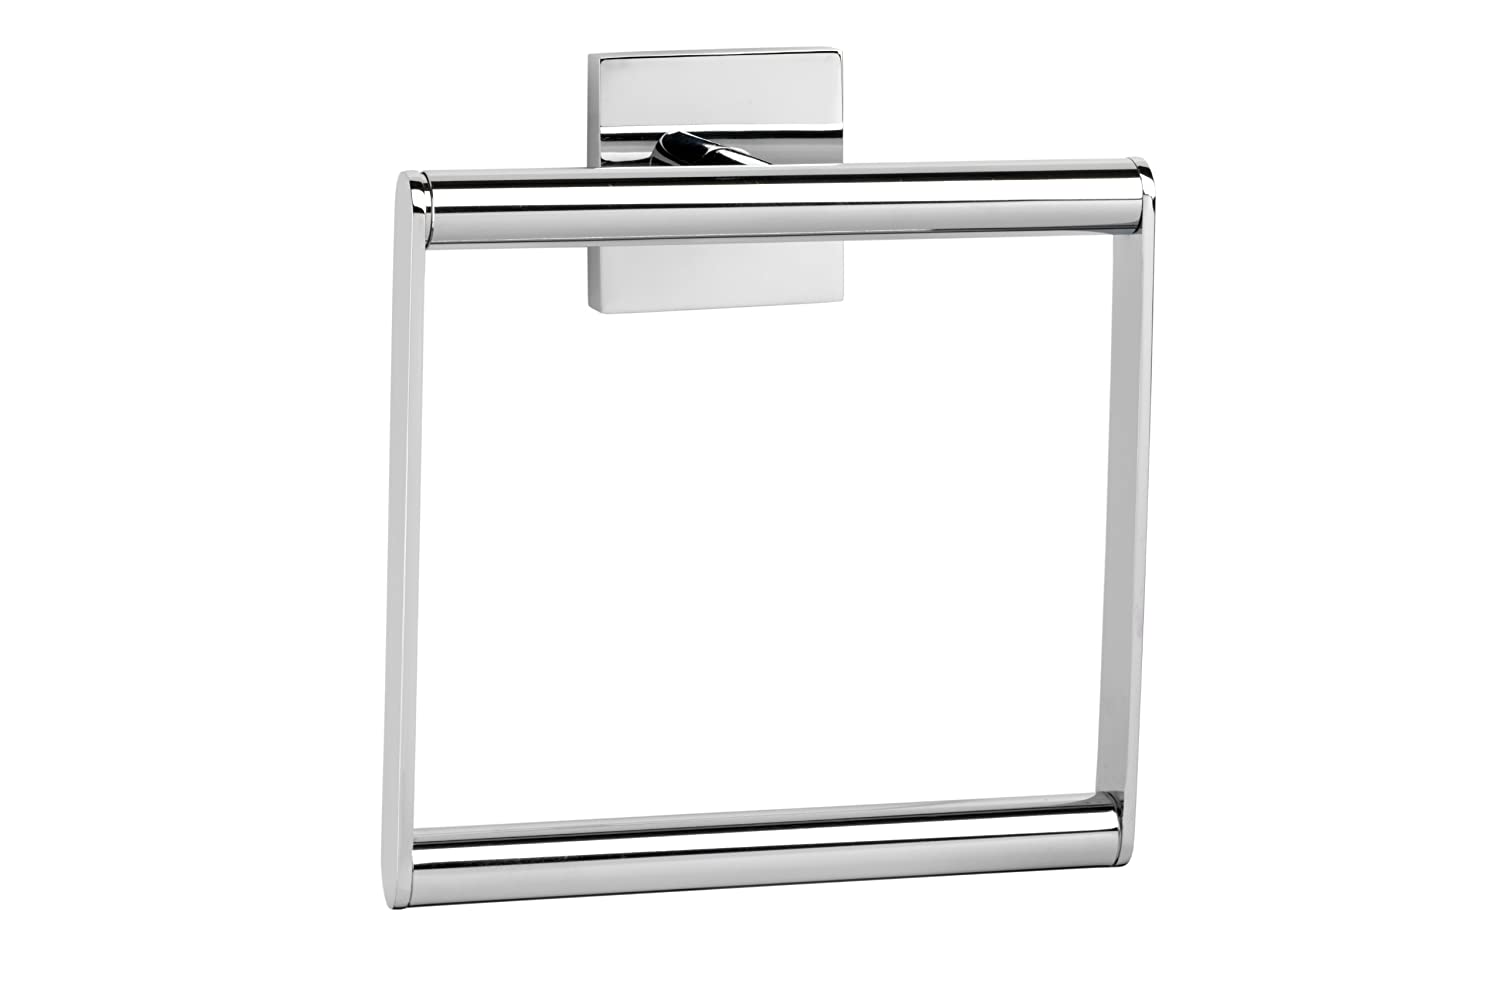 Croydex Chester Glass Corner Shelf, Silver, 54 x 220 x 220 mm QM445941